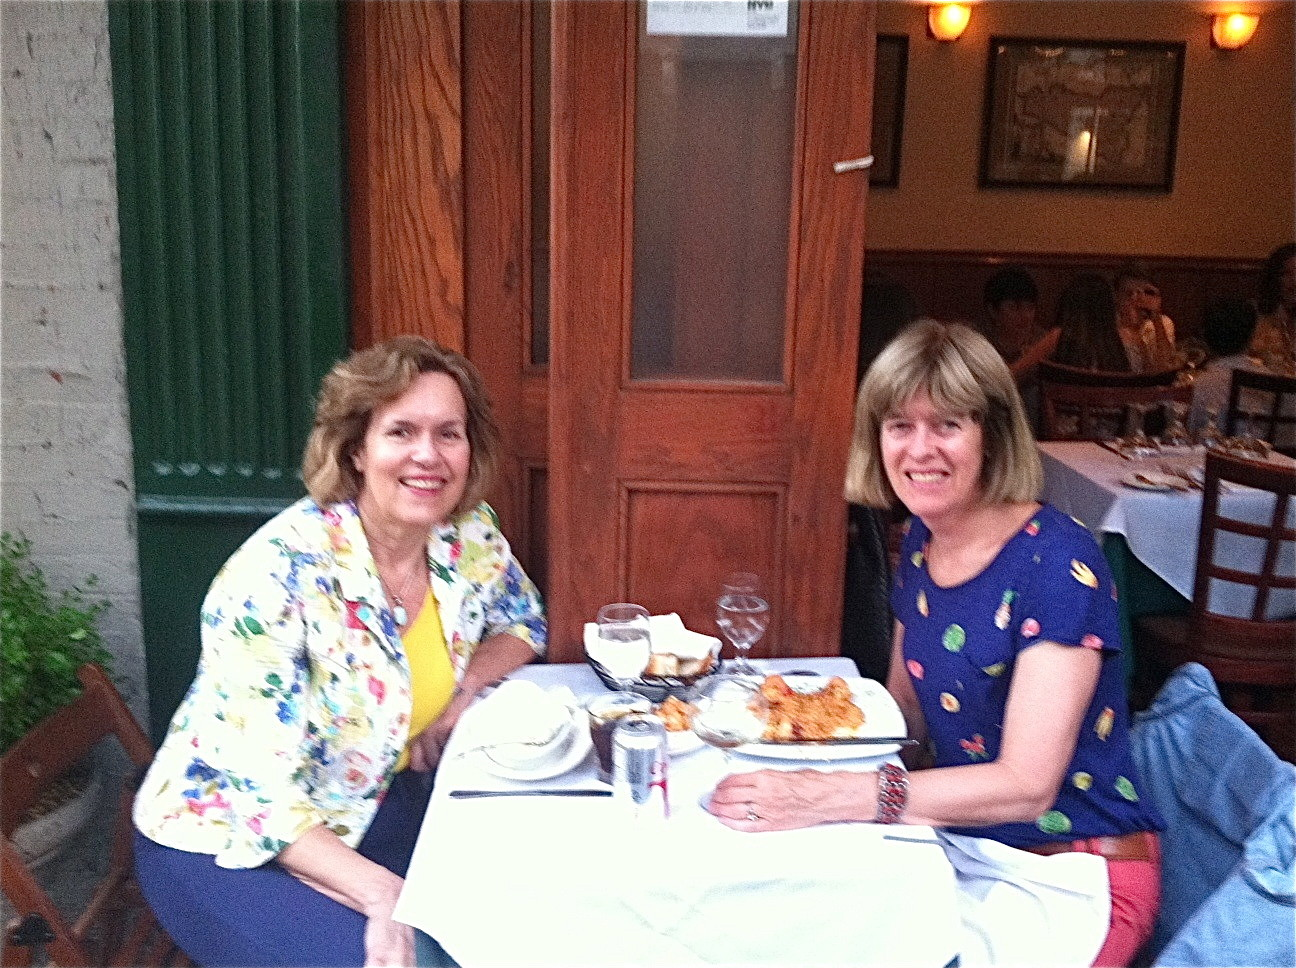 Nancy Hynes visits June 19-25, 2014 Lorraine & Nancy in NYC